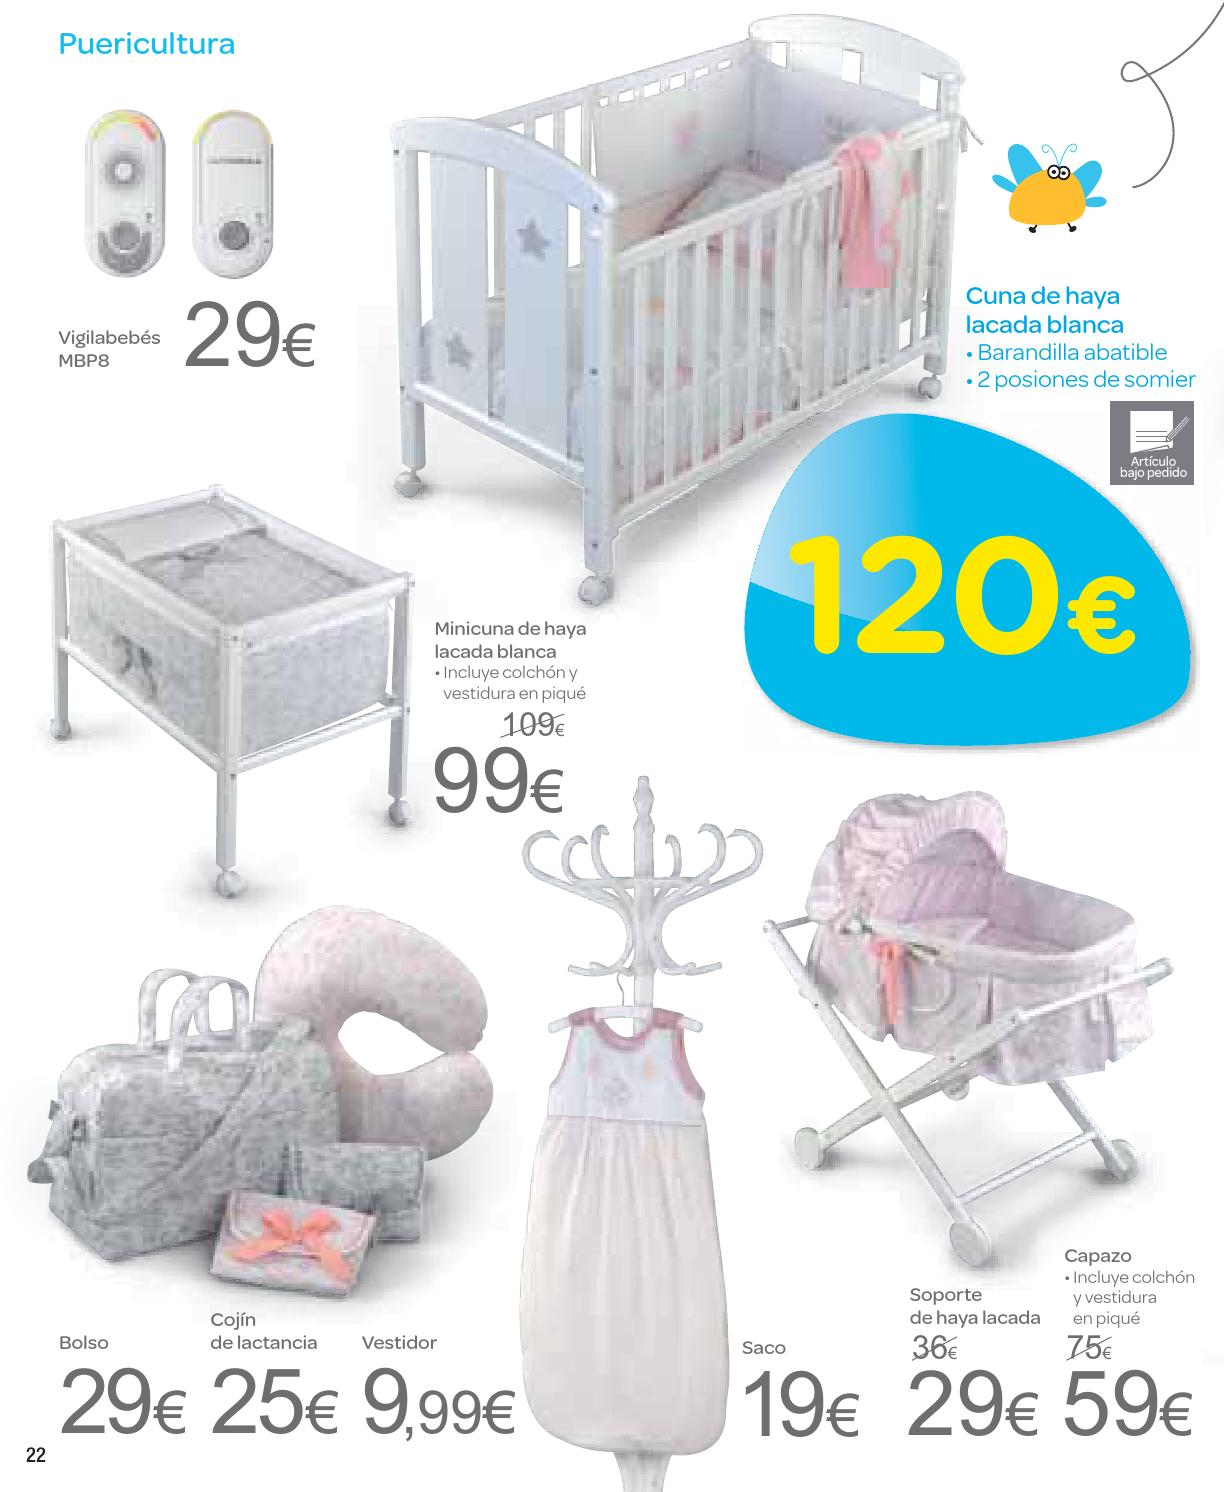 Colchon carrefour perfect catalogo carrefour y menaje by - Protector cuna carrefour ...